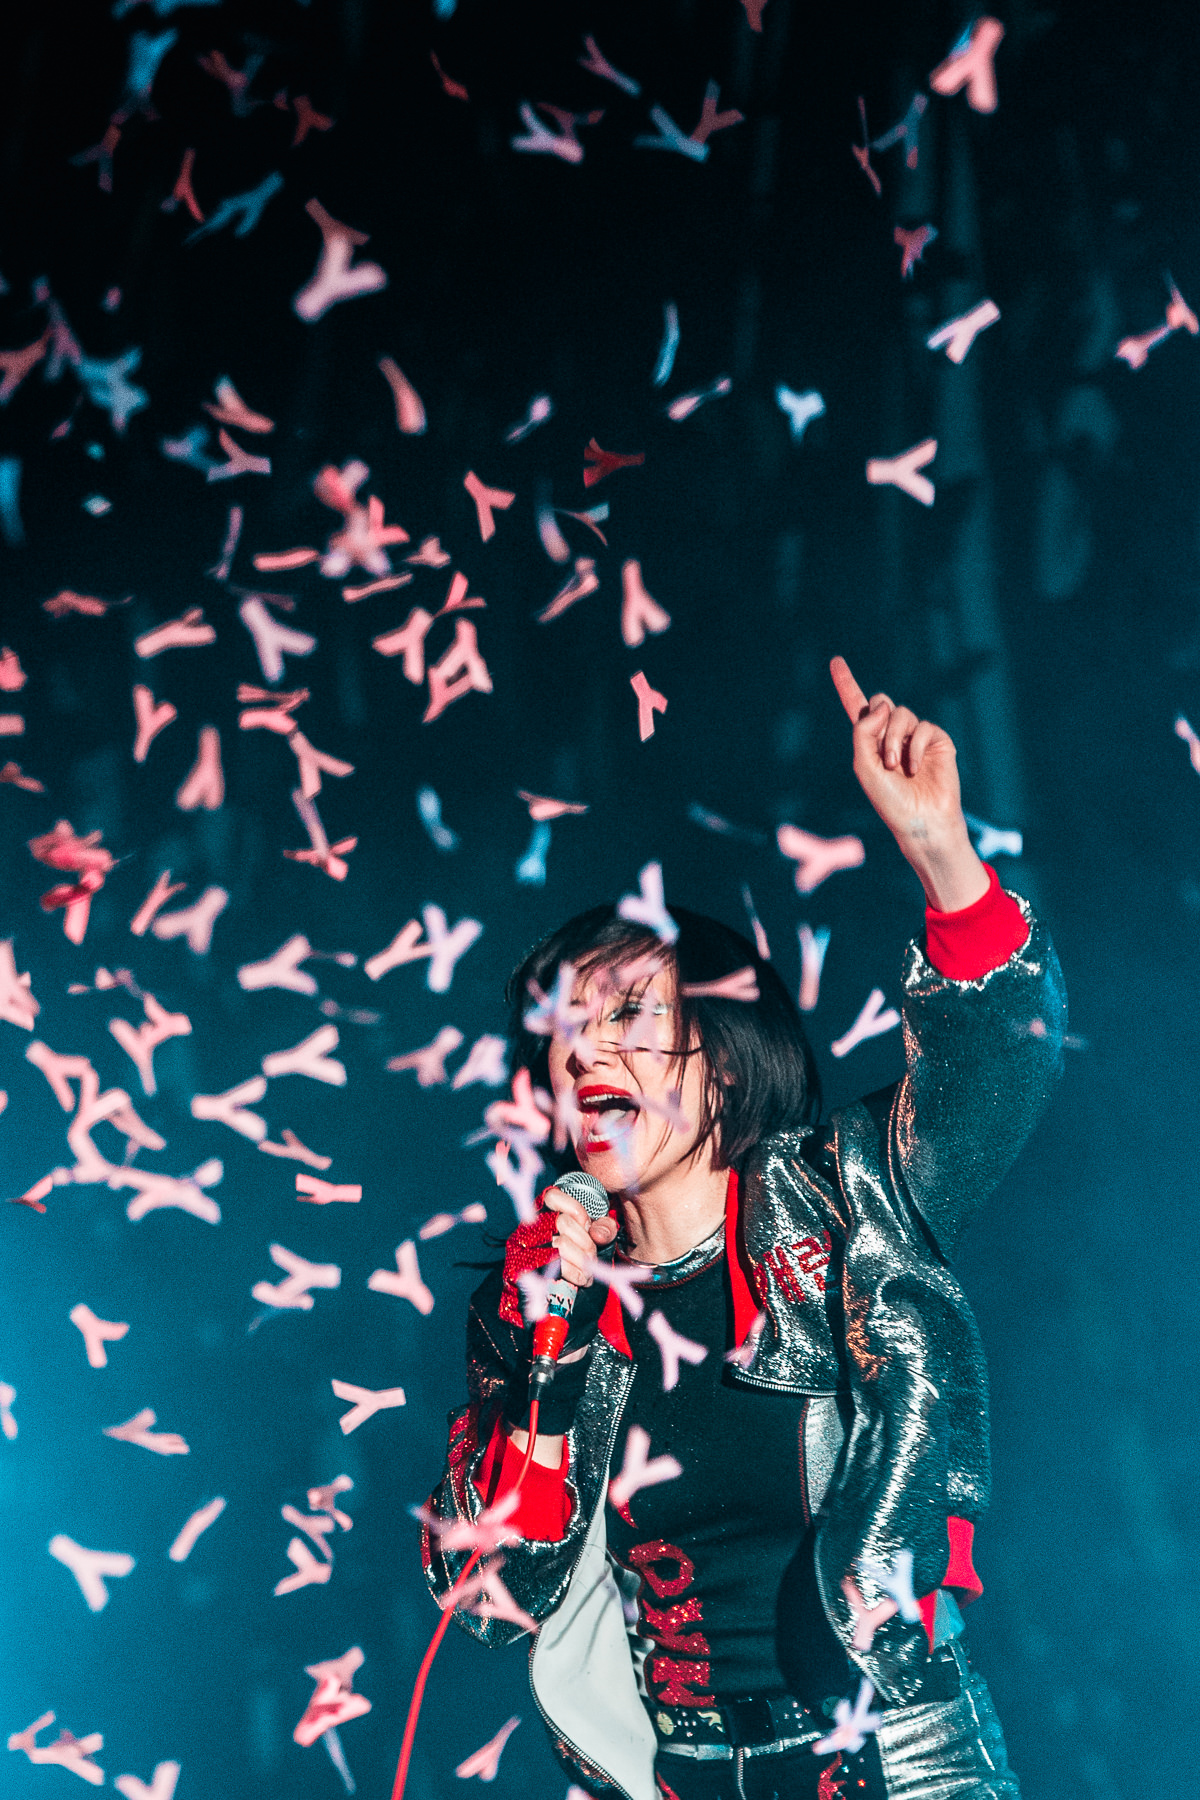 180506-kirby-gladstein-photograpy-Yeah-Yeah-Yeahs-Hollywood-Bowl-LA-6998.jpg